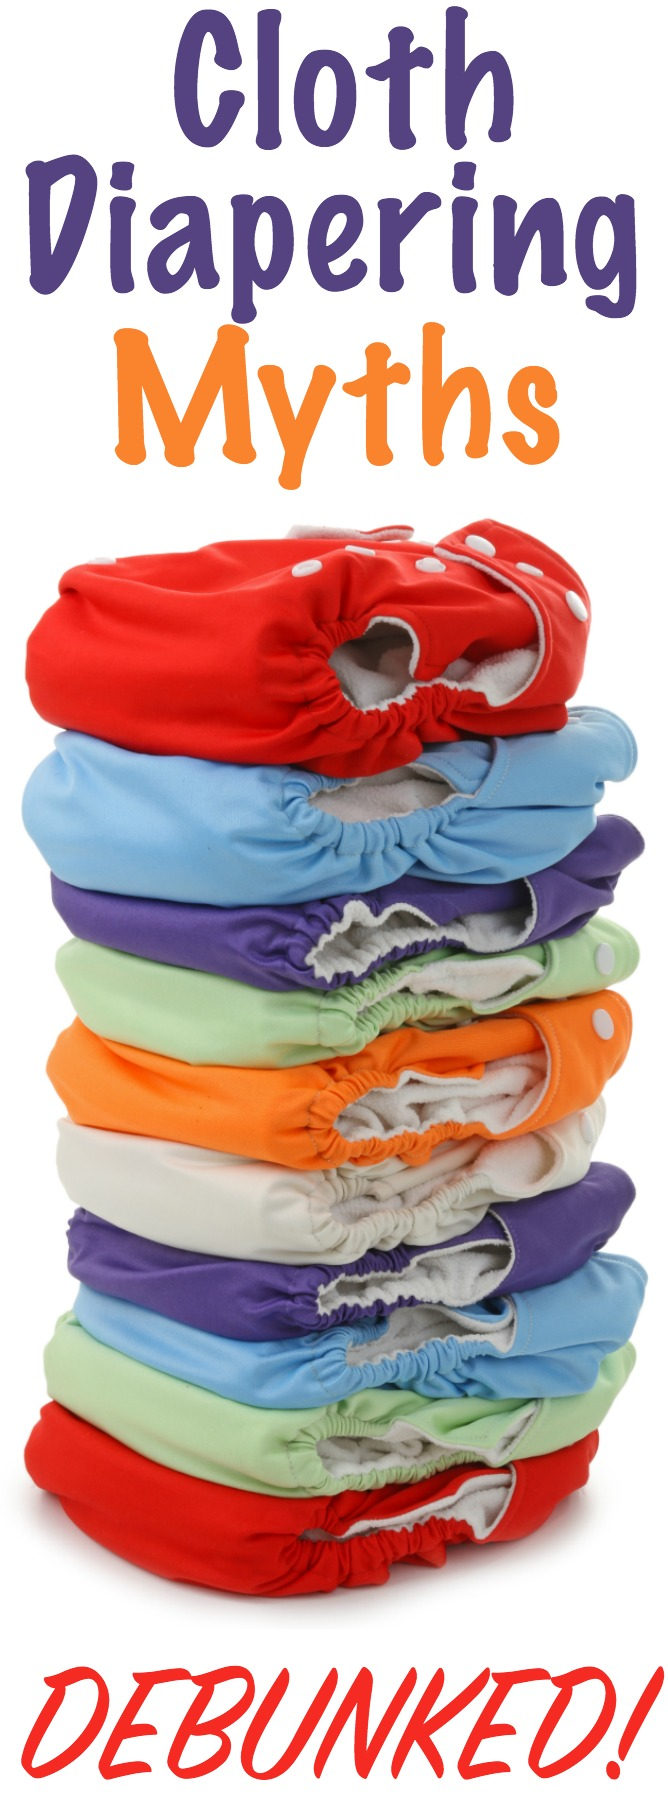 cloth diapering myths